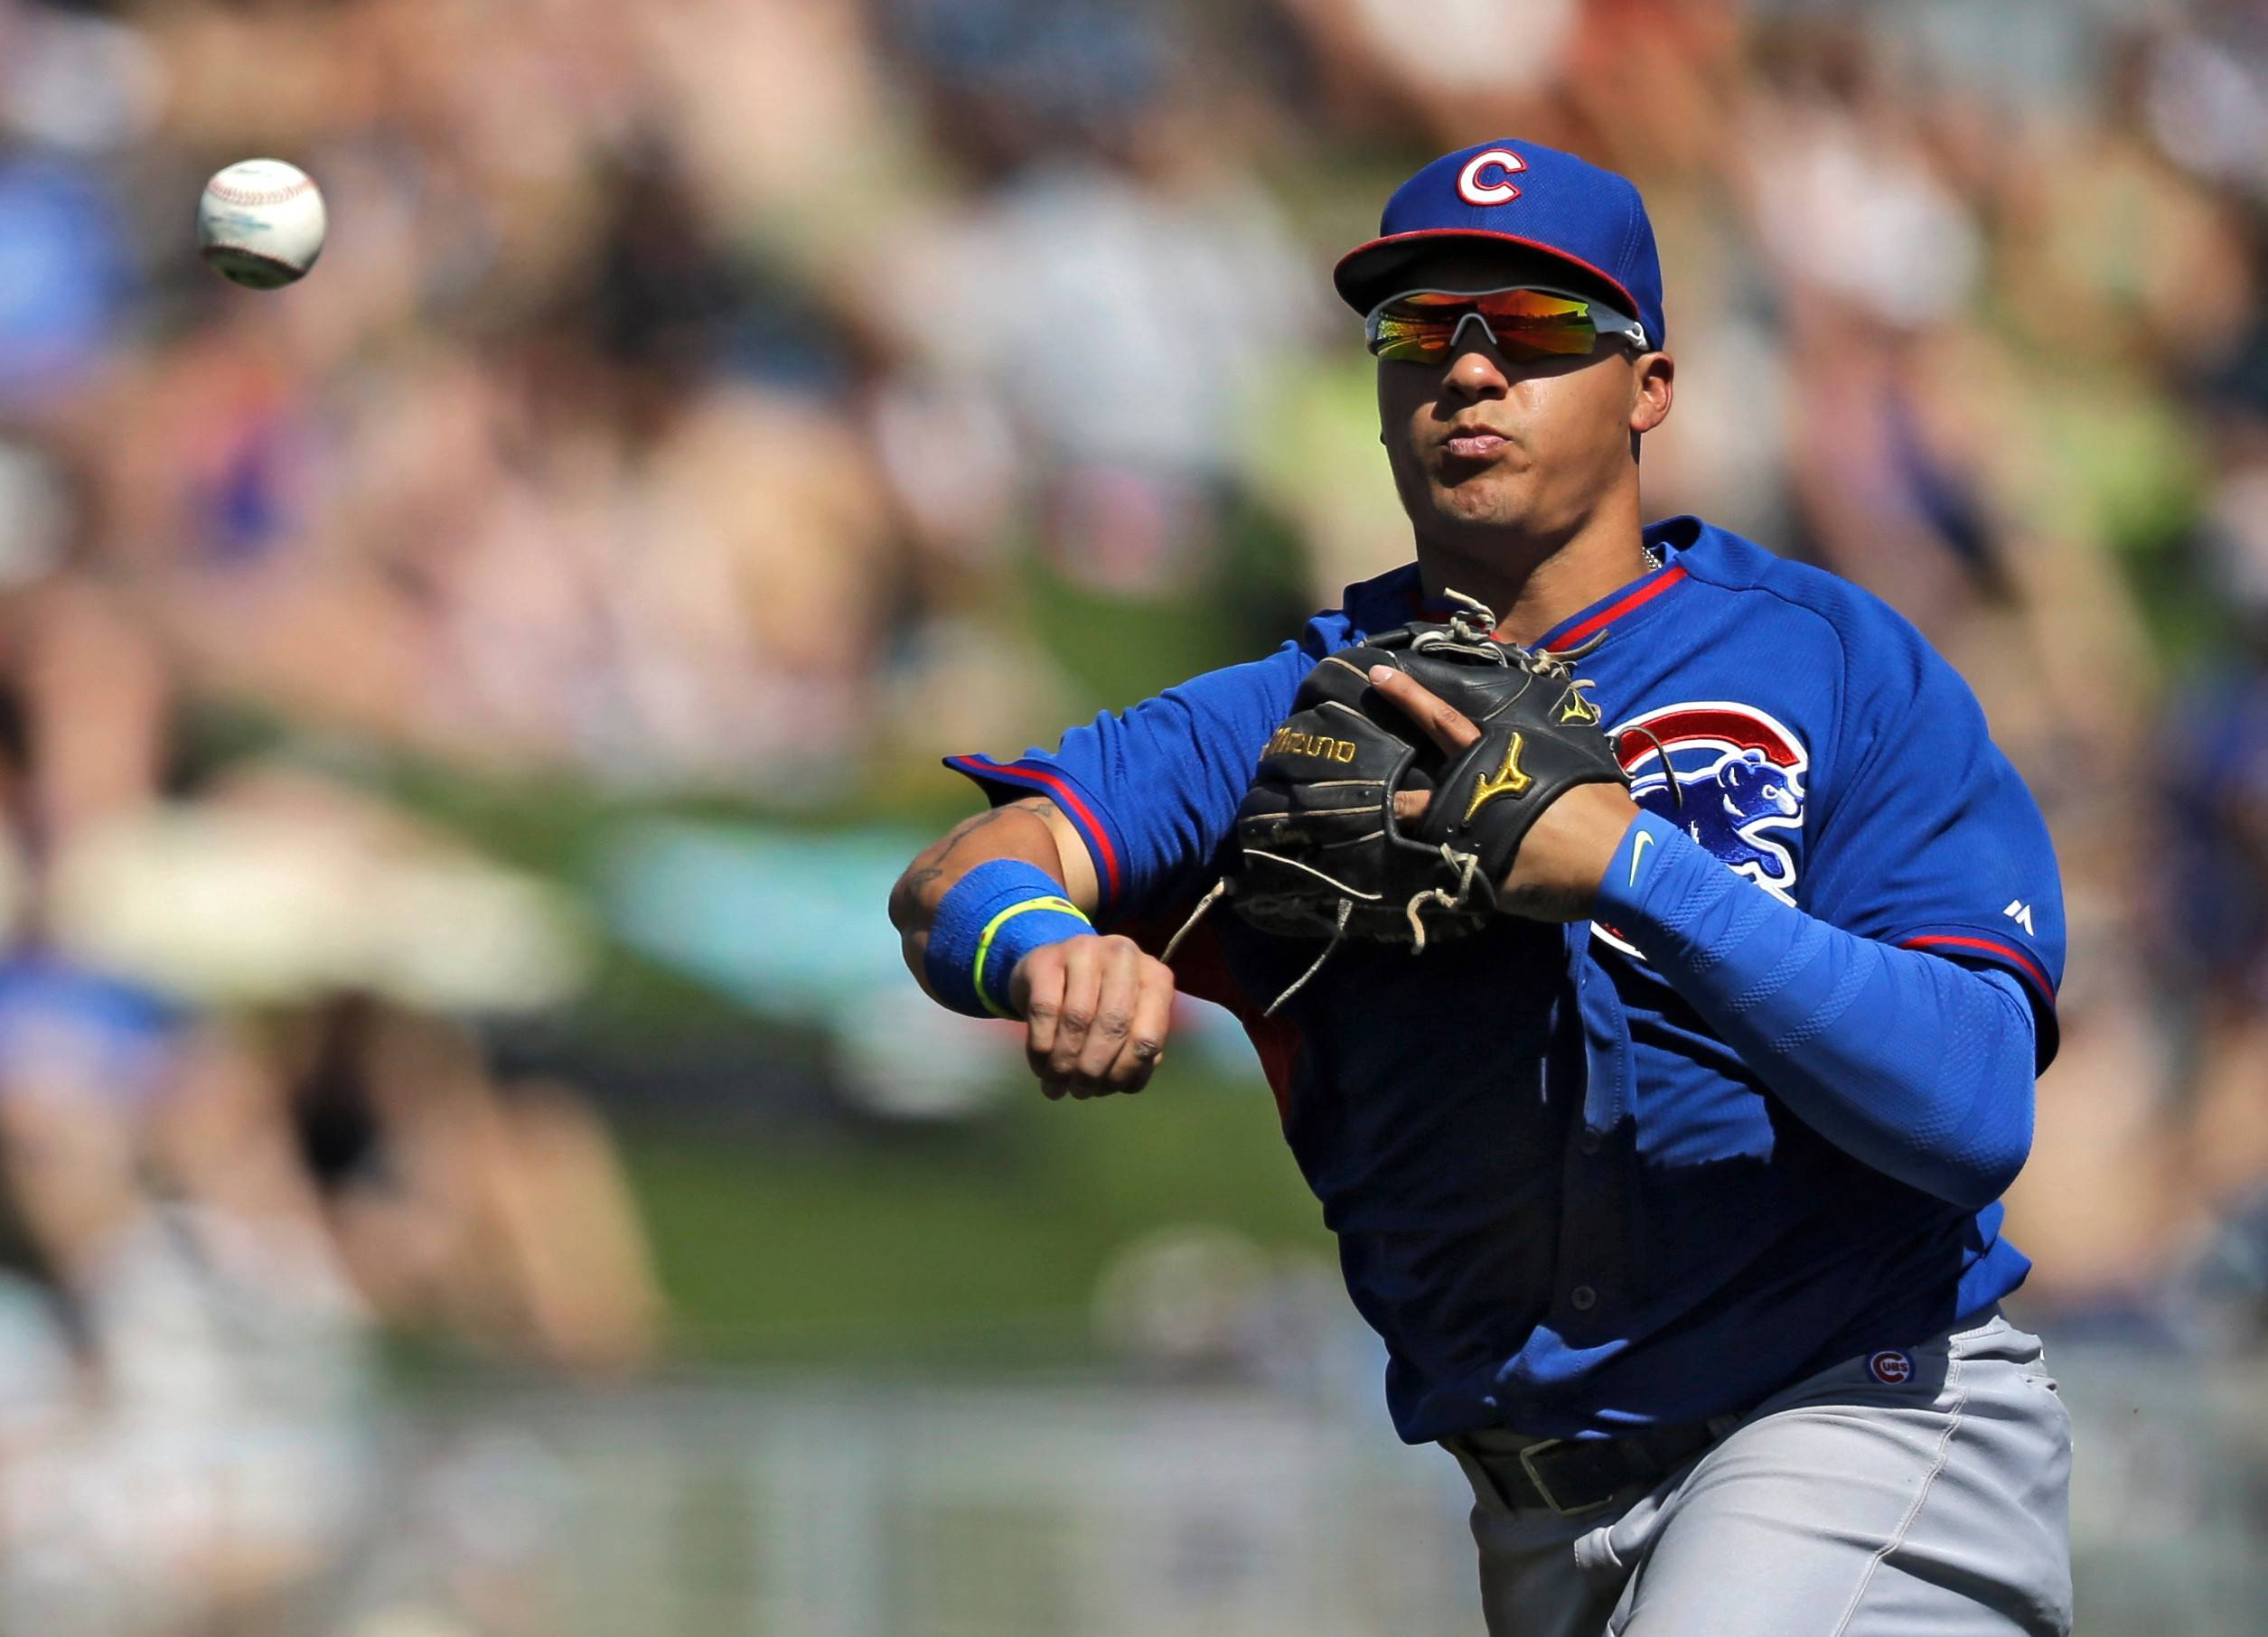 Cubs prospect Javier Baez got off to a slow start with the bat this season, but his defensive work for the Triple-A Iowa Cubs has been solid.